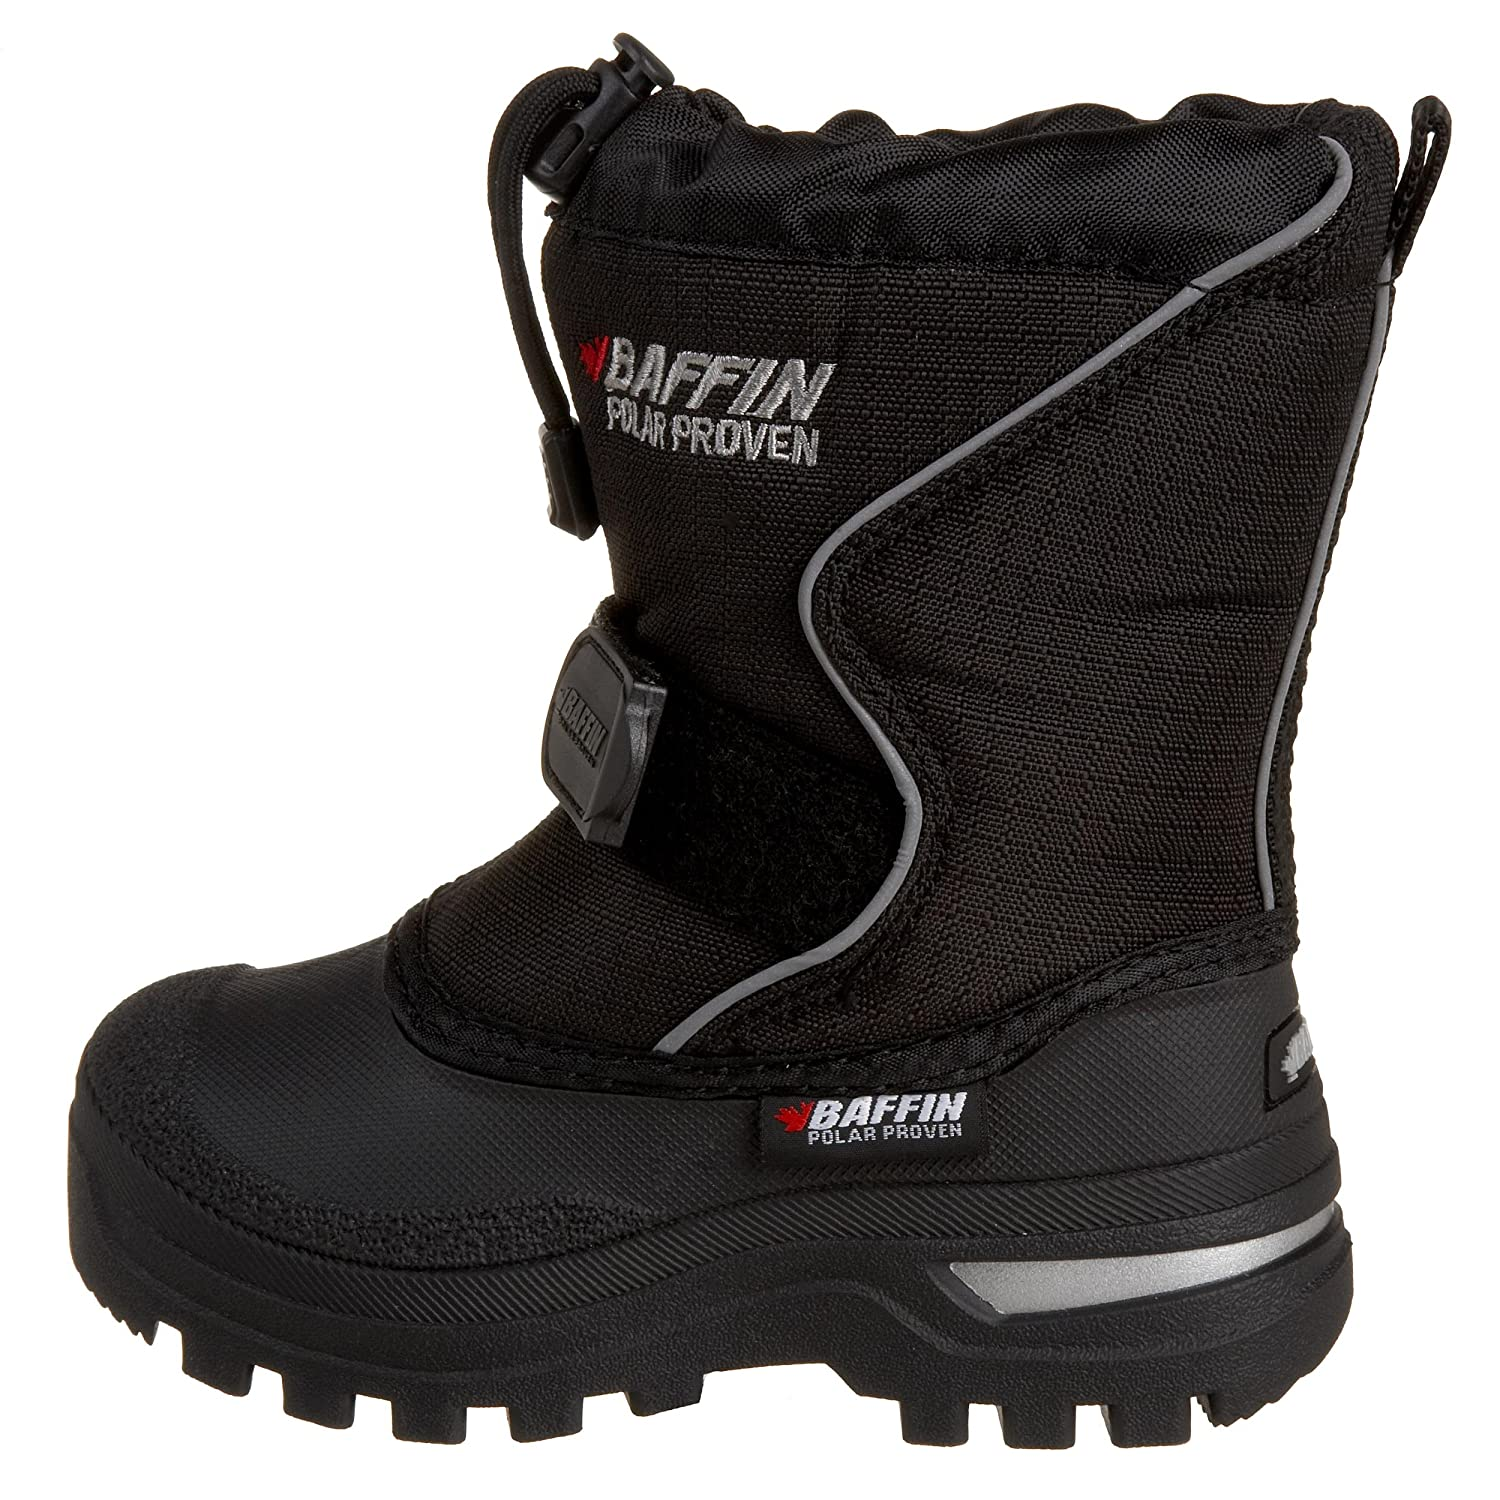 dce259a214e Baffin Unisex Mustang Snow Boots